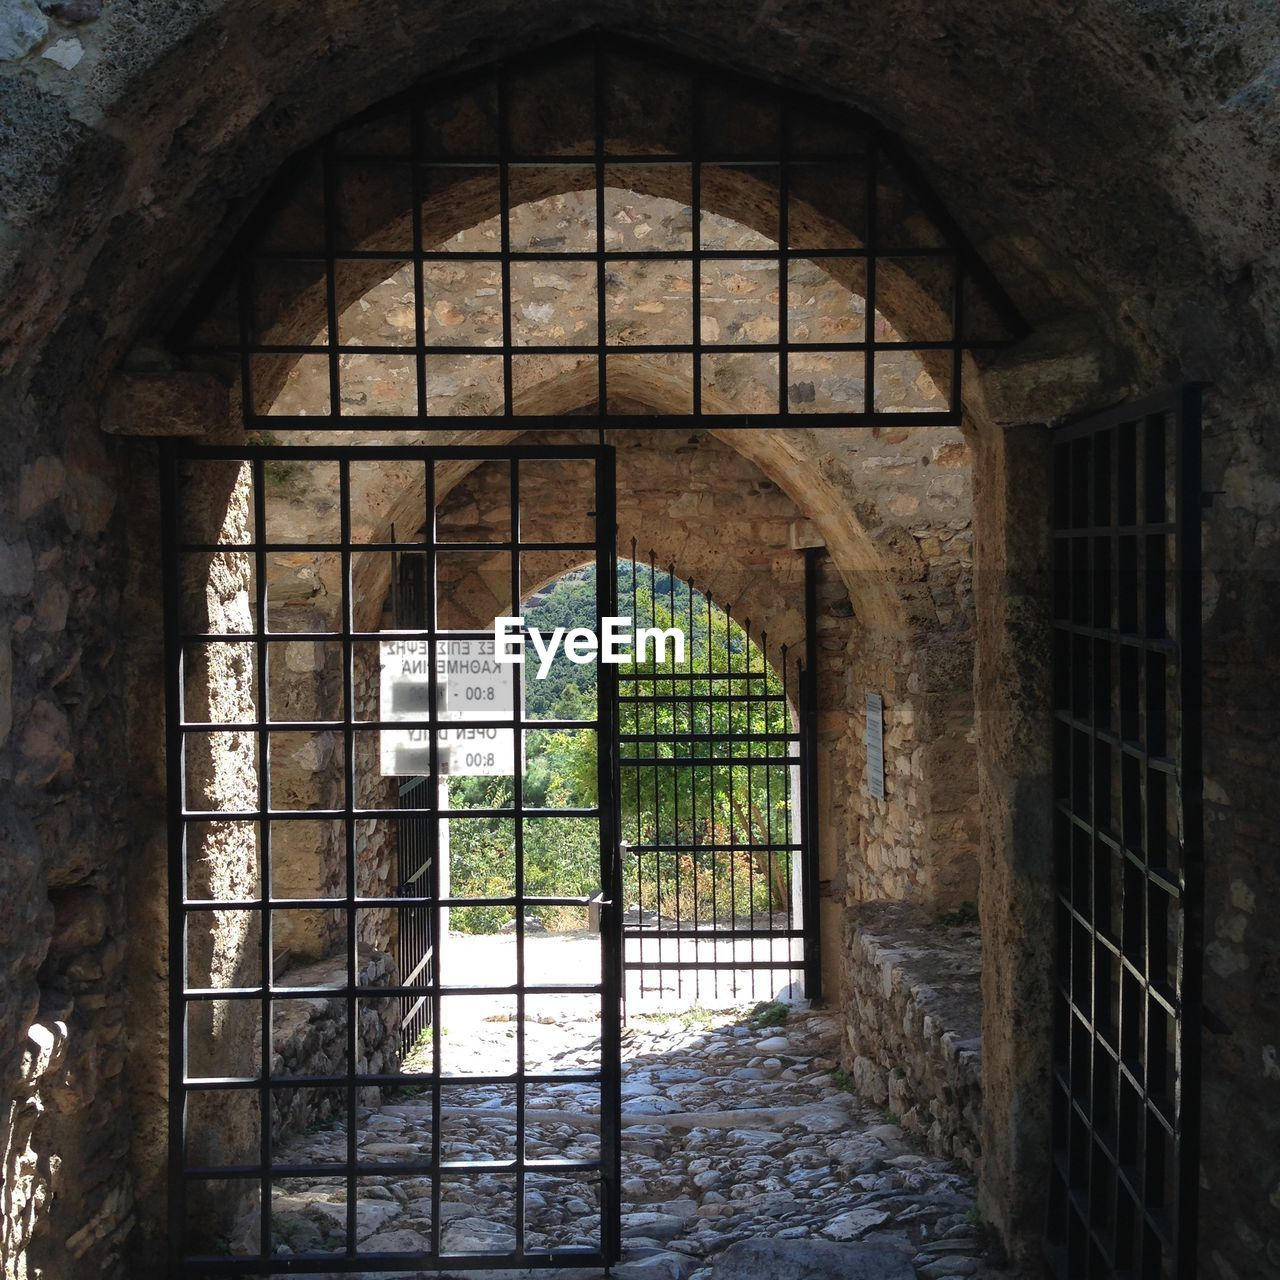 architecture, built structure, arch, window, entrance, old, door, no people, day, building, gate, history, the past, wall, metal, abandoned, indoors, open, security, stone wall, iron - metal